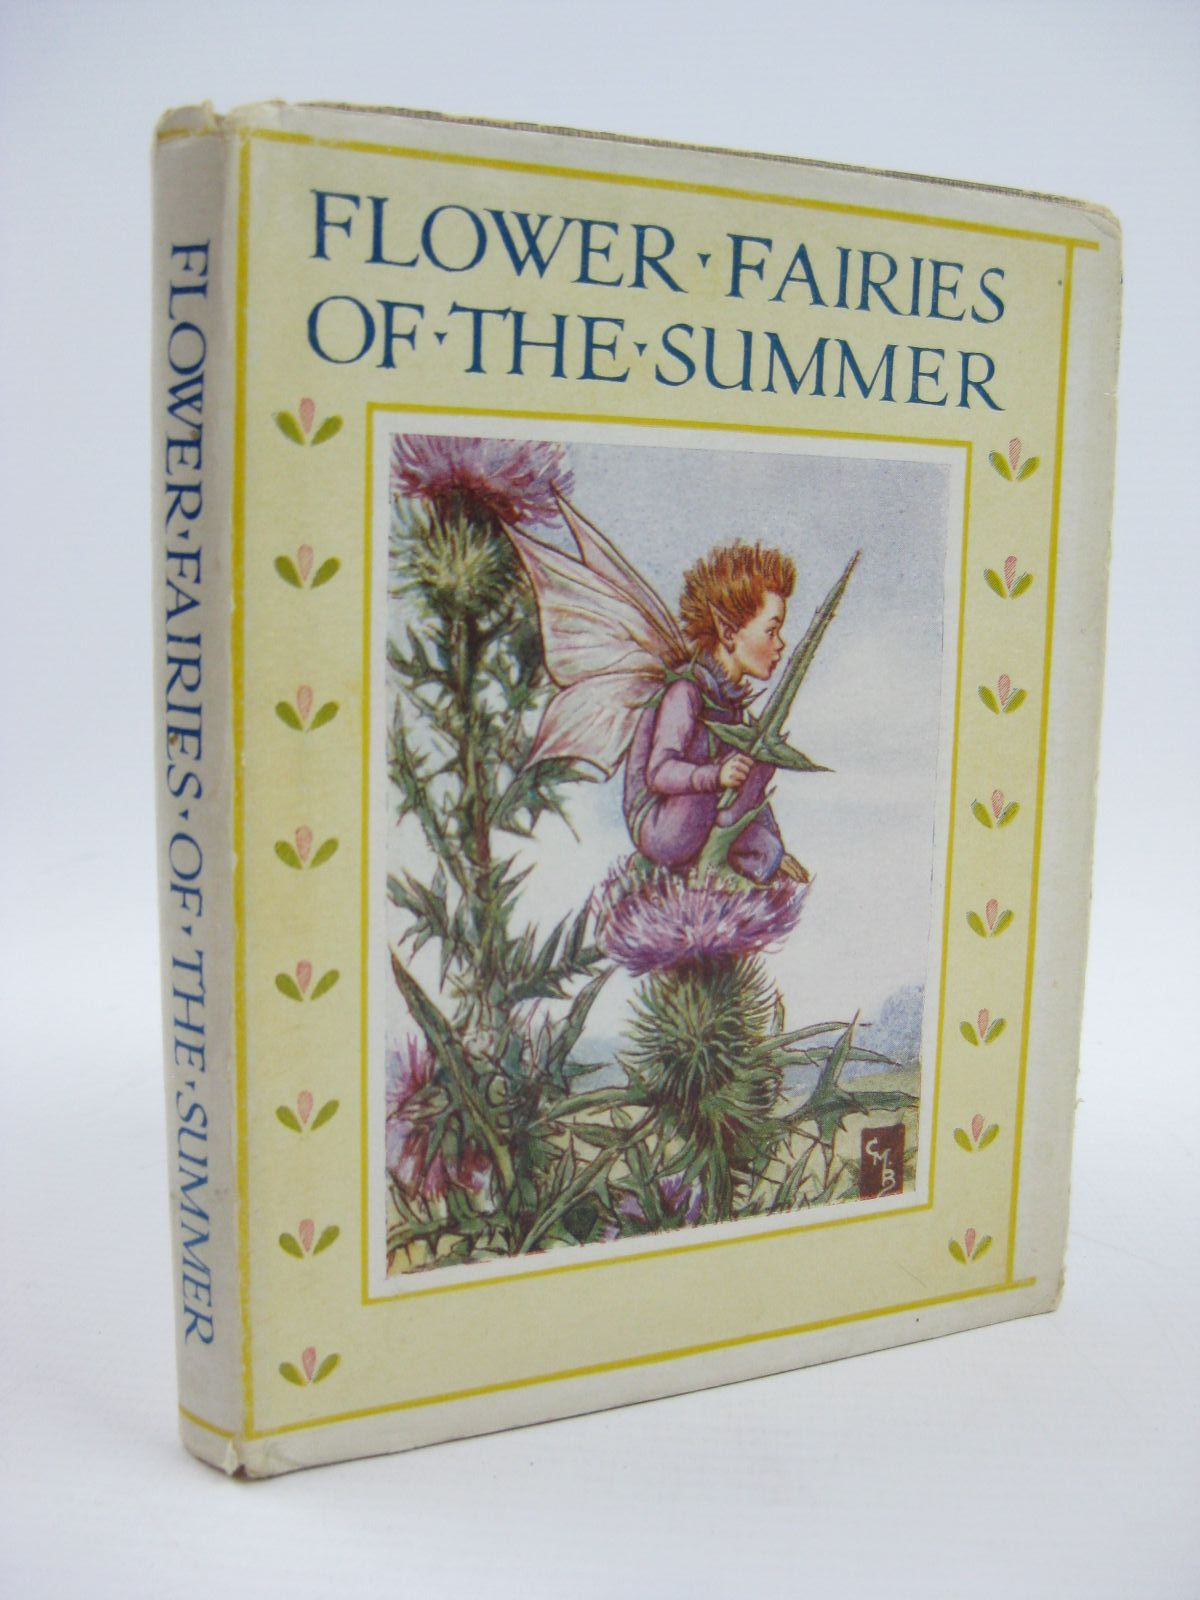 Photo of FLOWER FAIRIES OF THE SUMMER written by Barker, Cicely Mary illustrated by Barker, Cicely Mary published by Blackie & Son Ltd. (STOCK CODE: 1507127)  for sale by Stella & Rose's Books